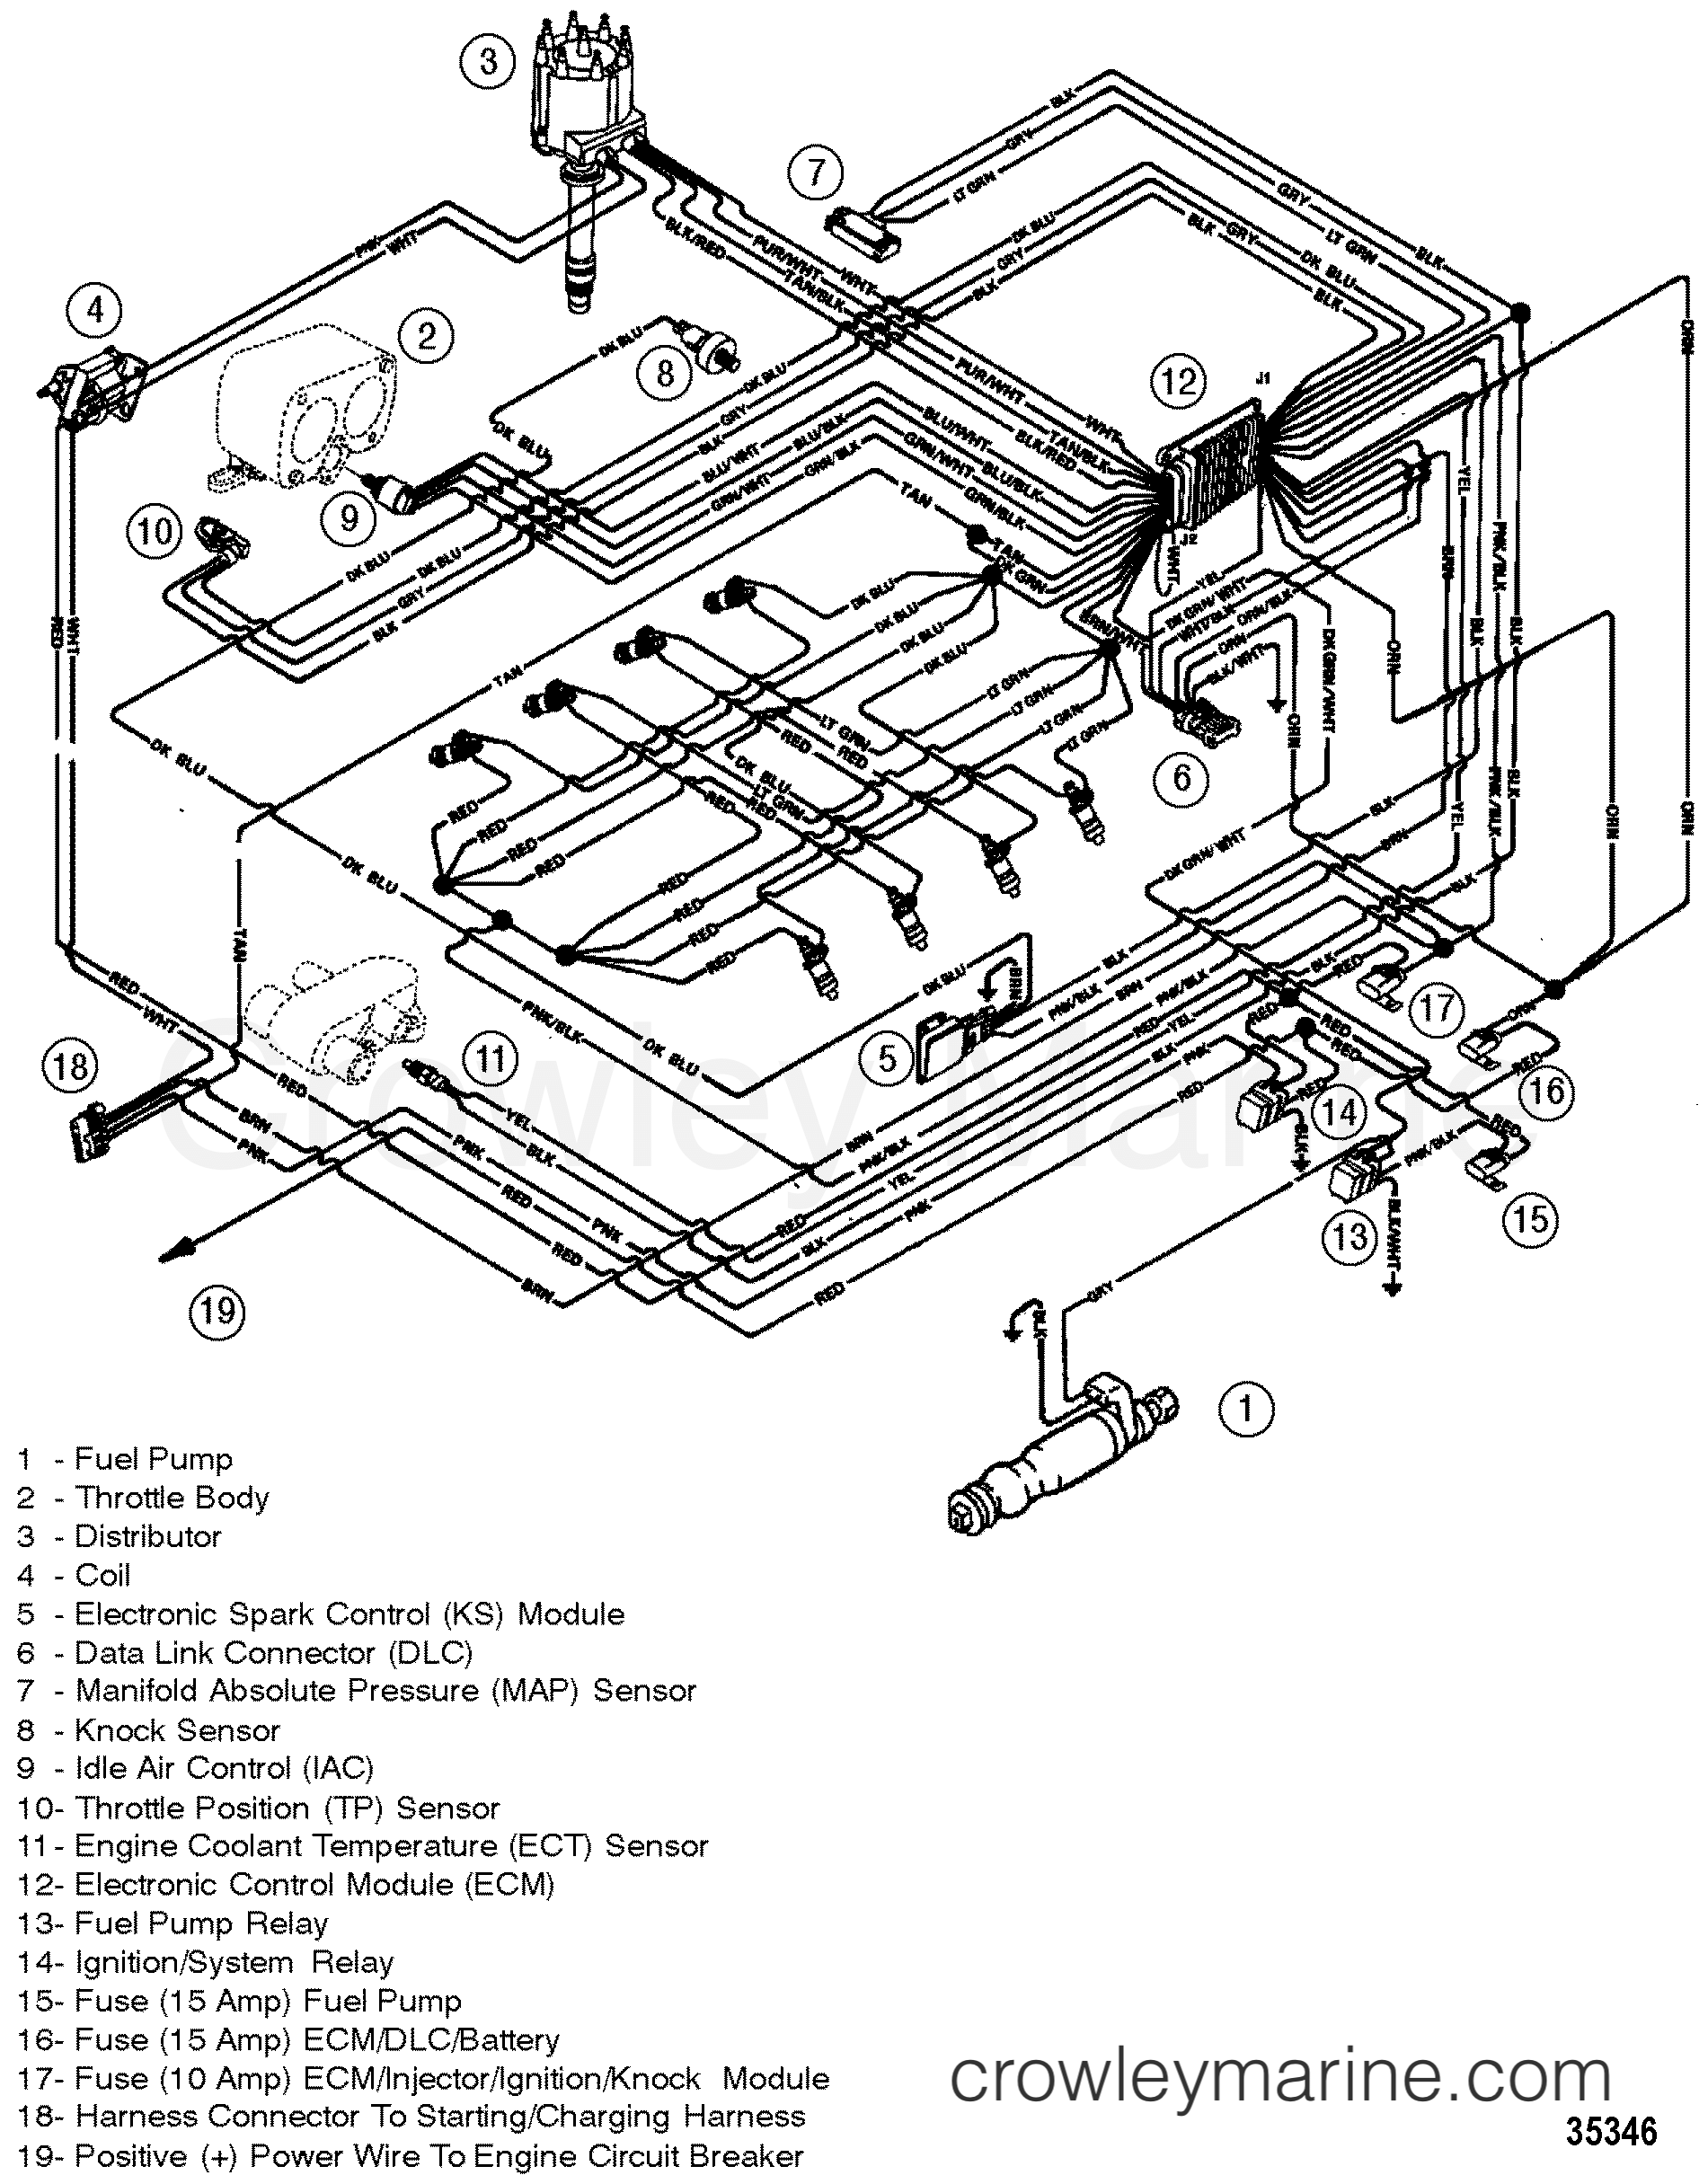 Omc Stern Drive Wiring Diagram - Diagrams online on